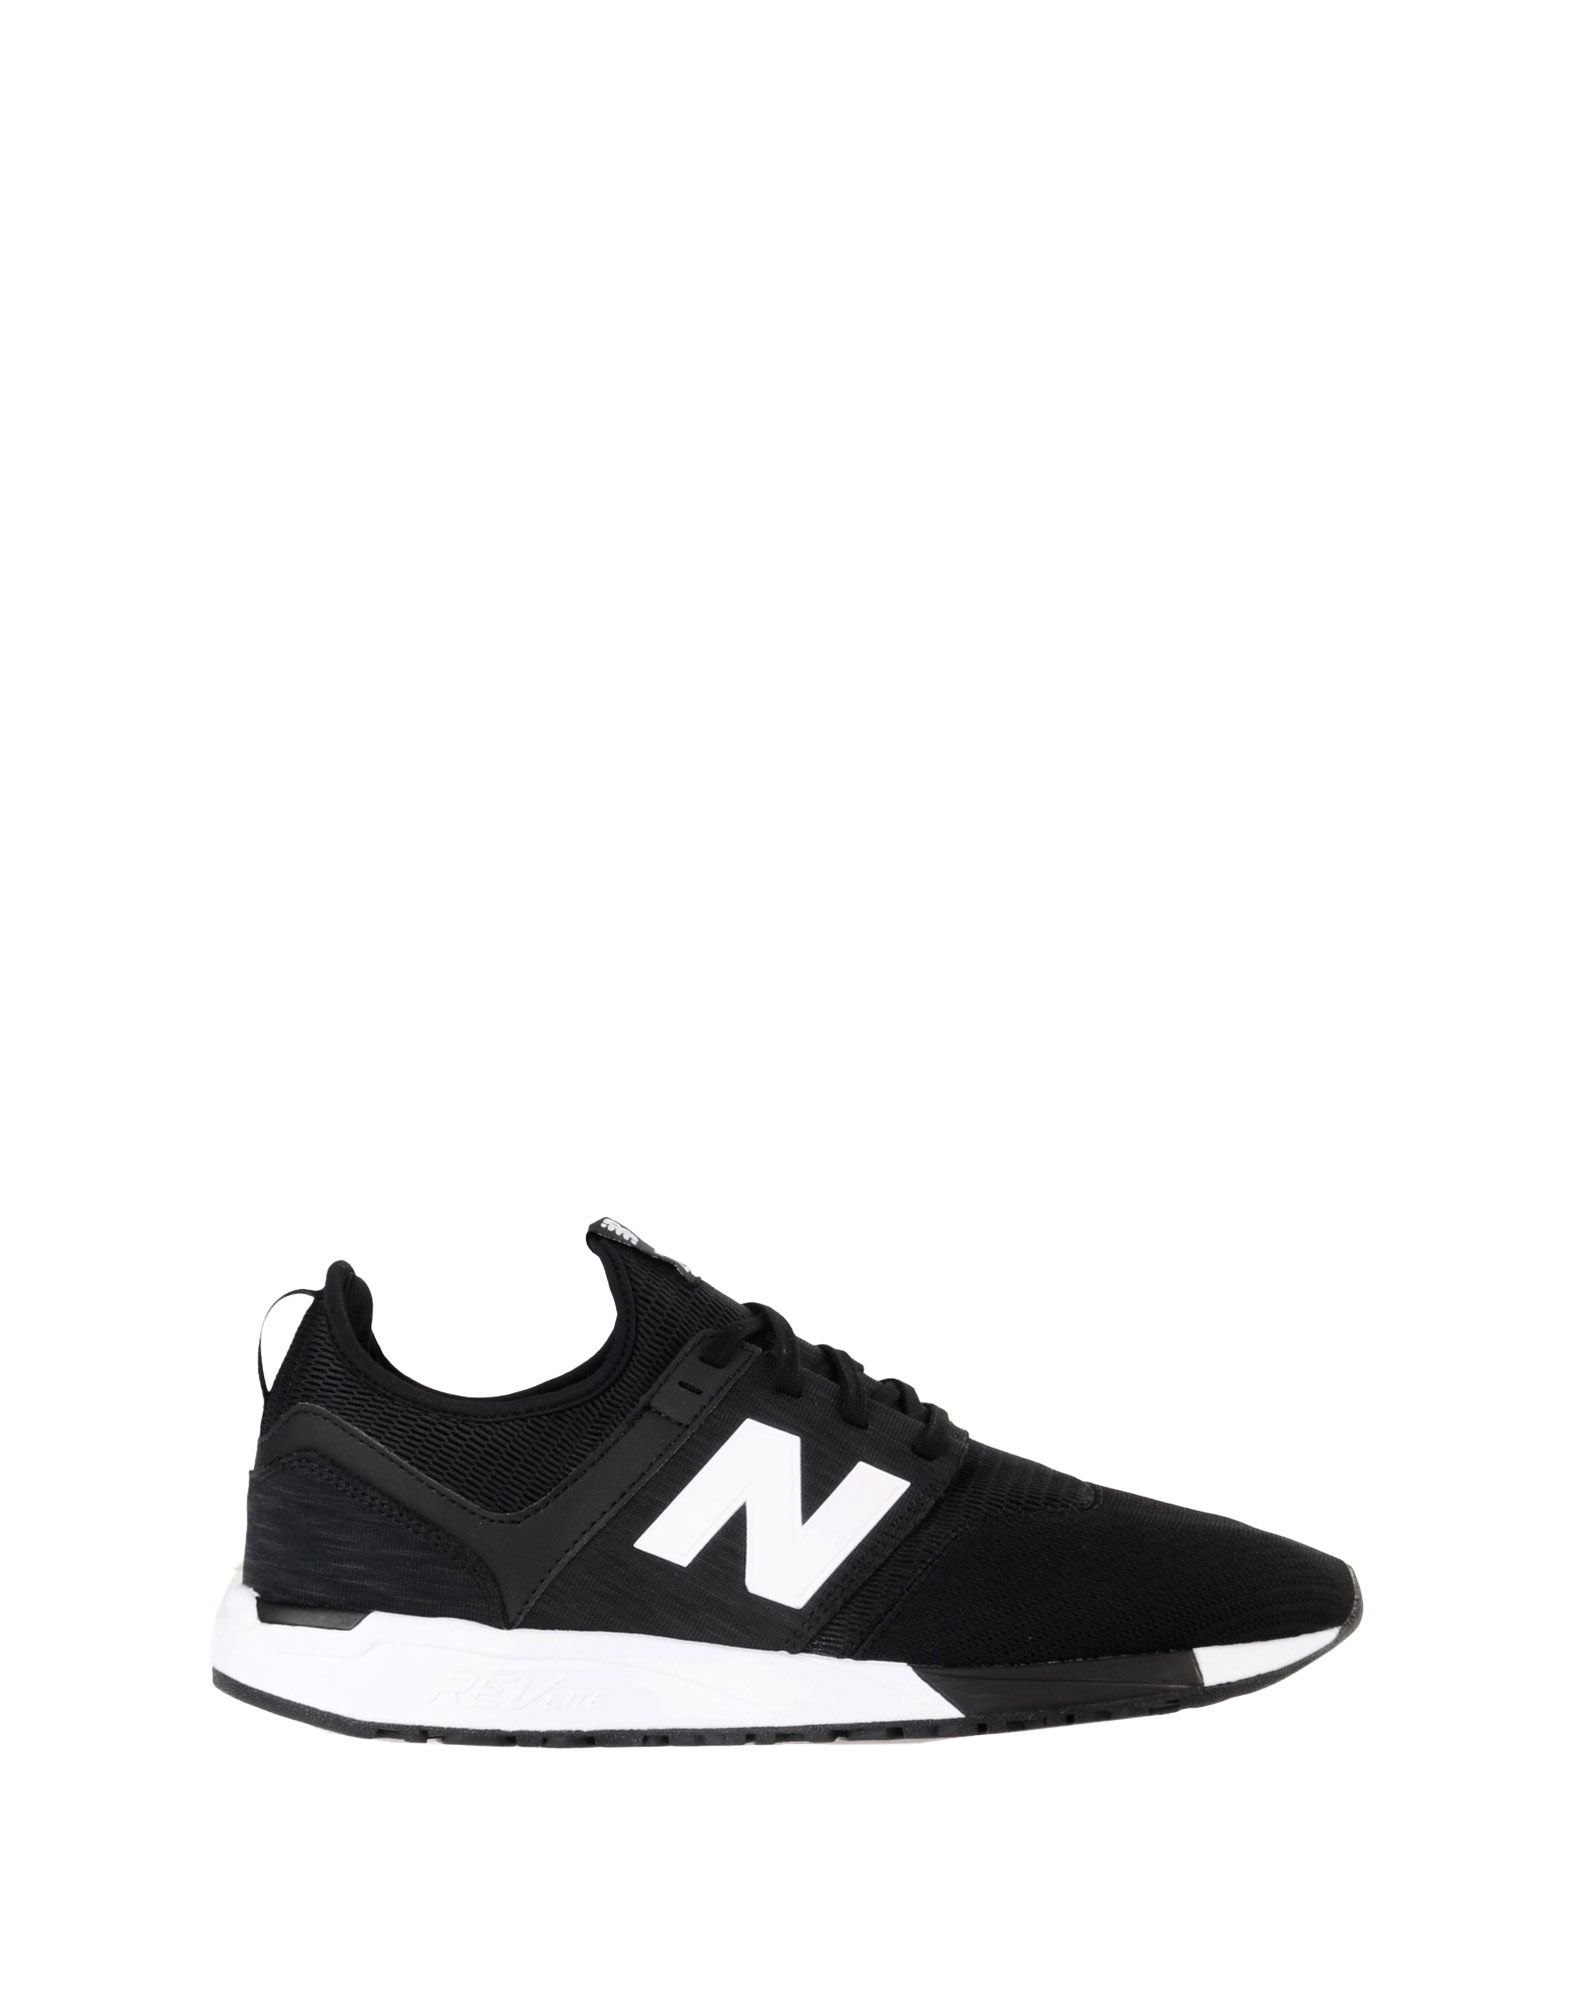 New Sneakers Balance 247 Mesh/Synthetic - Sneakers New - Men New Balance Sneakers online on  Canada - 11467081QV 9da7ea